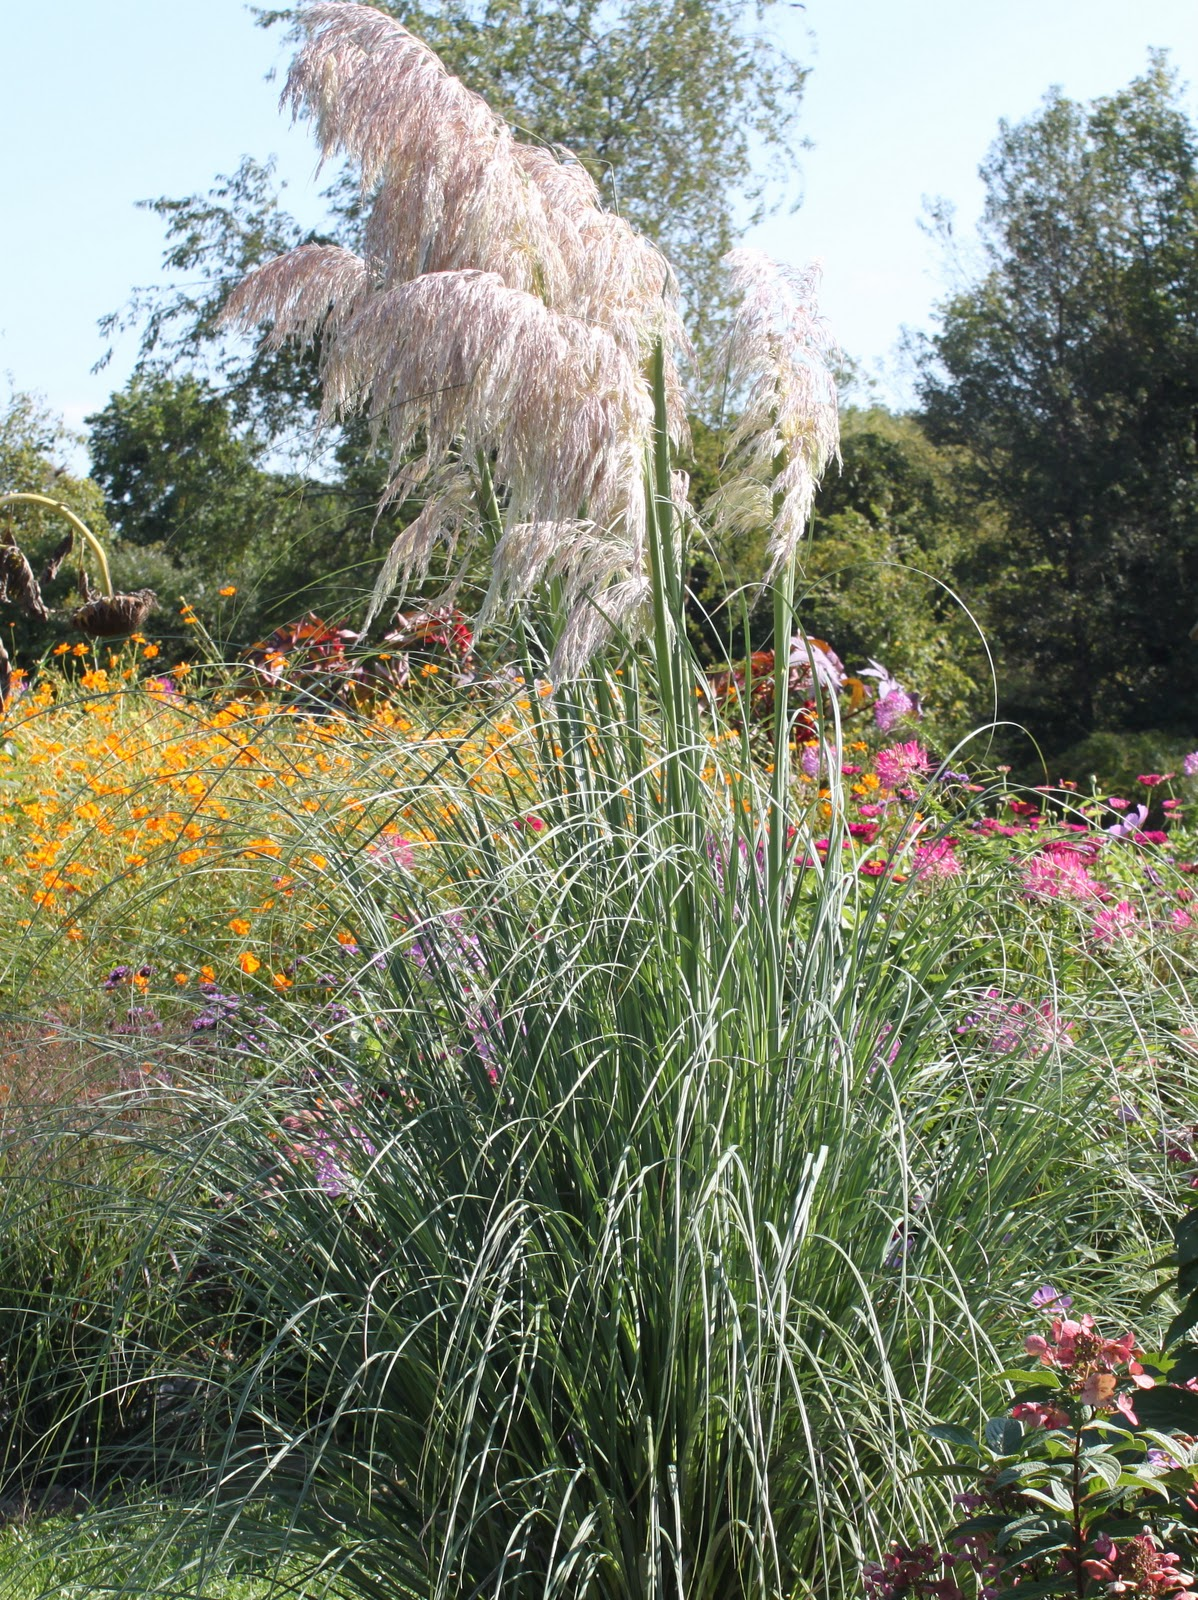 Gardening for wildlife for Tall grass with plumes